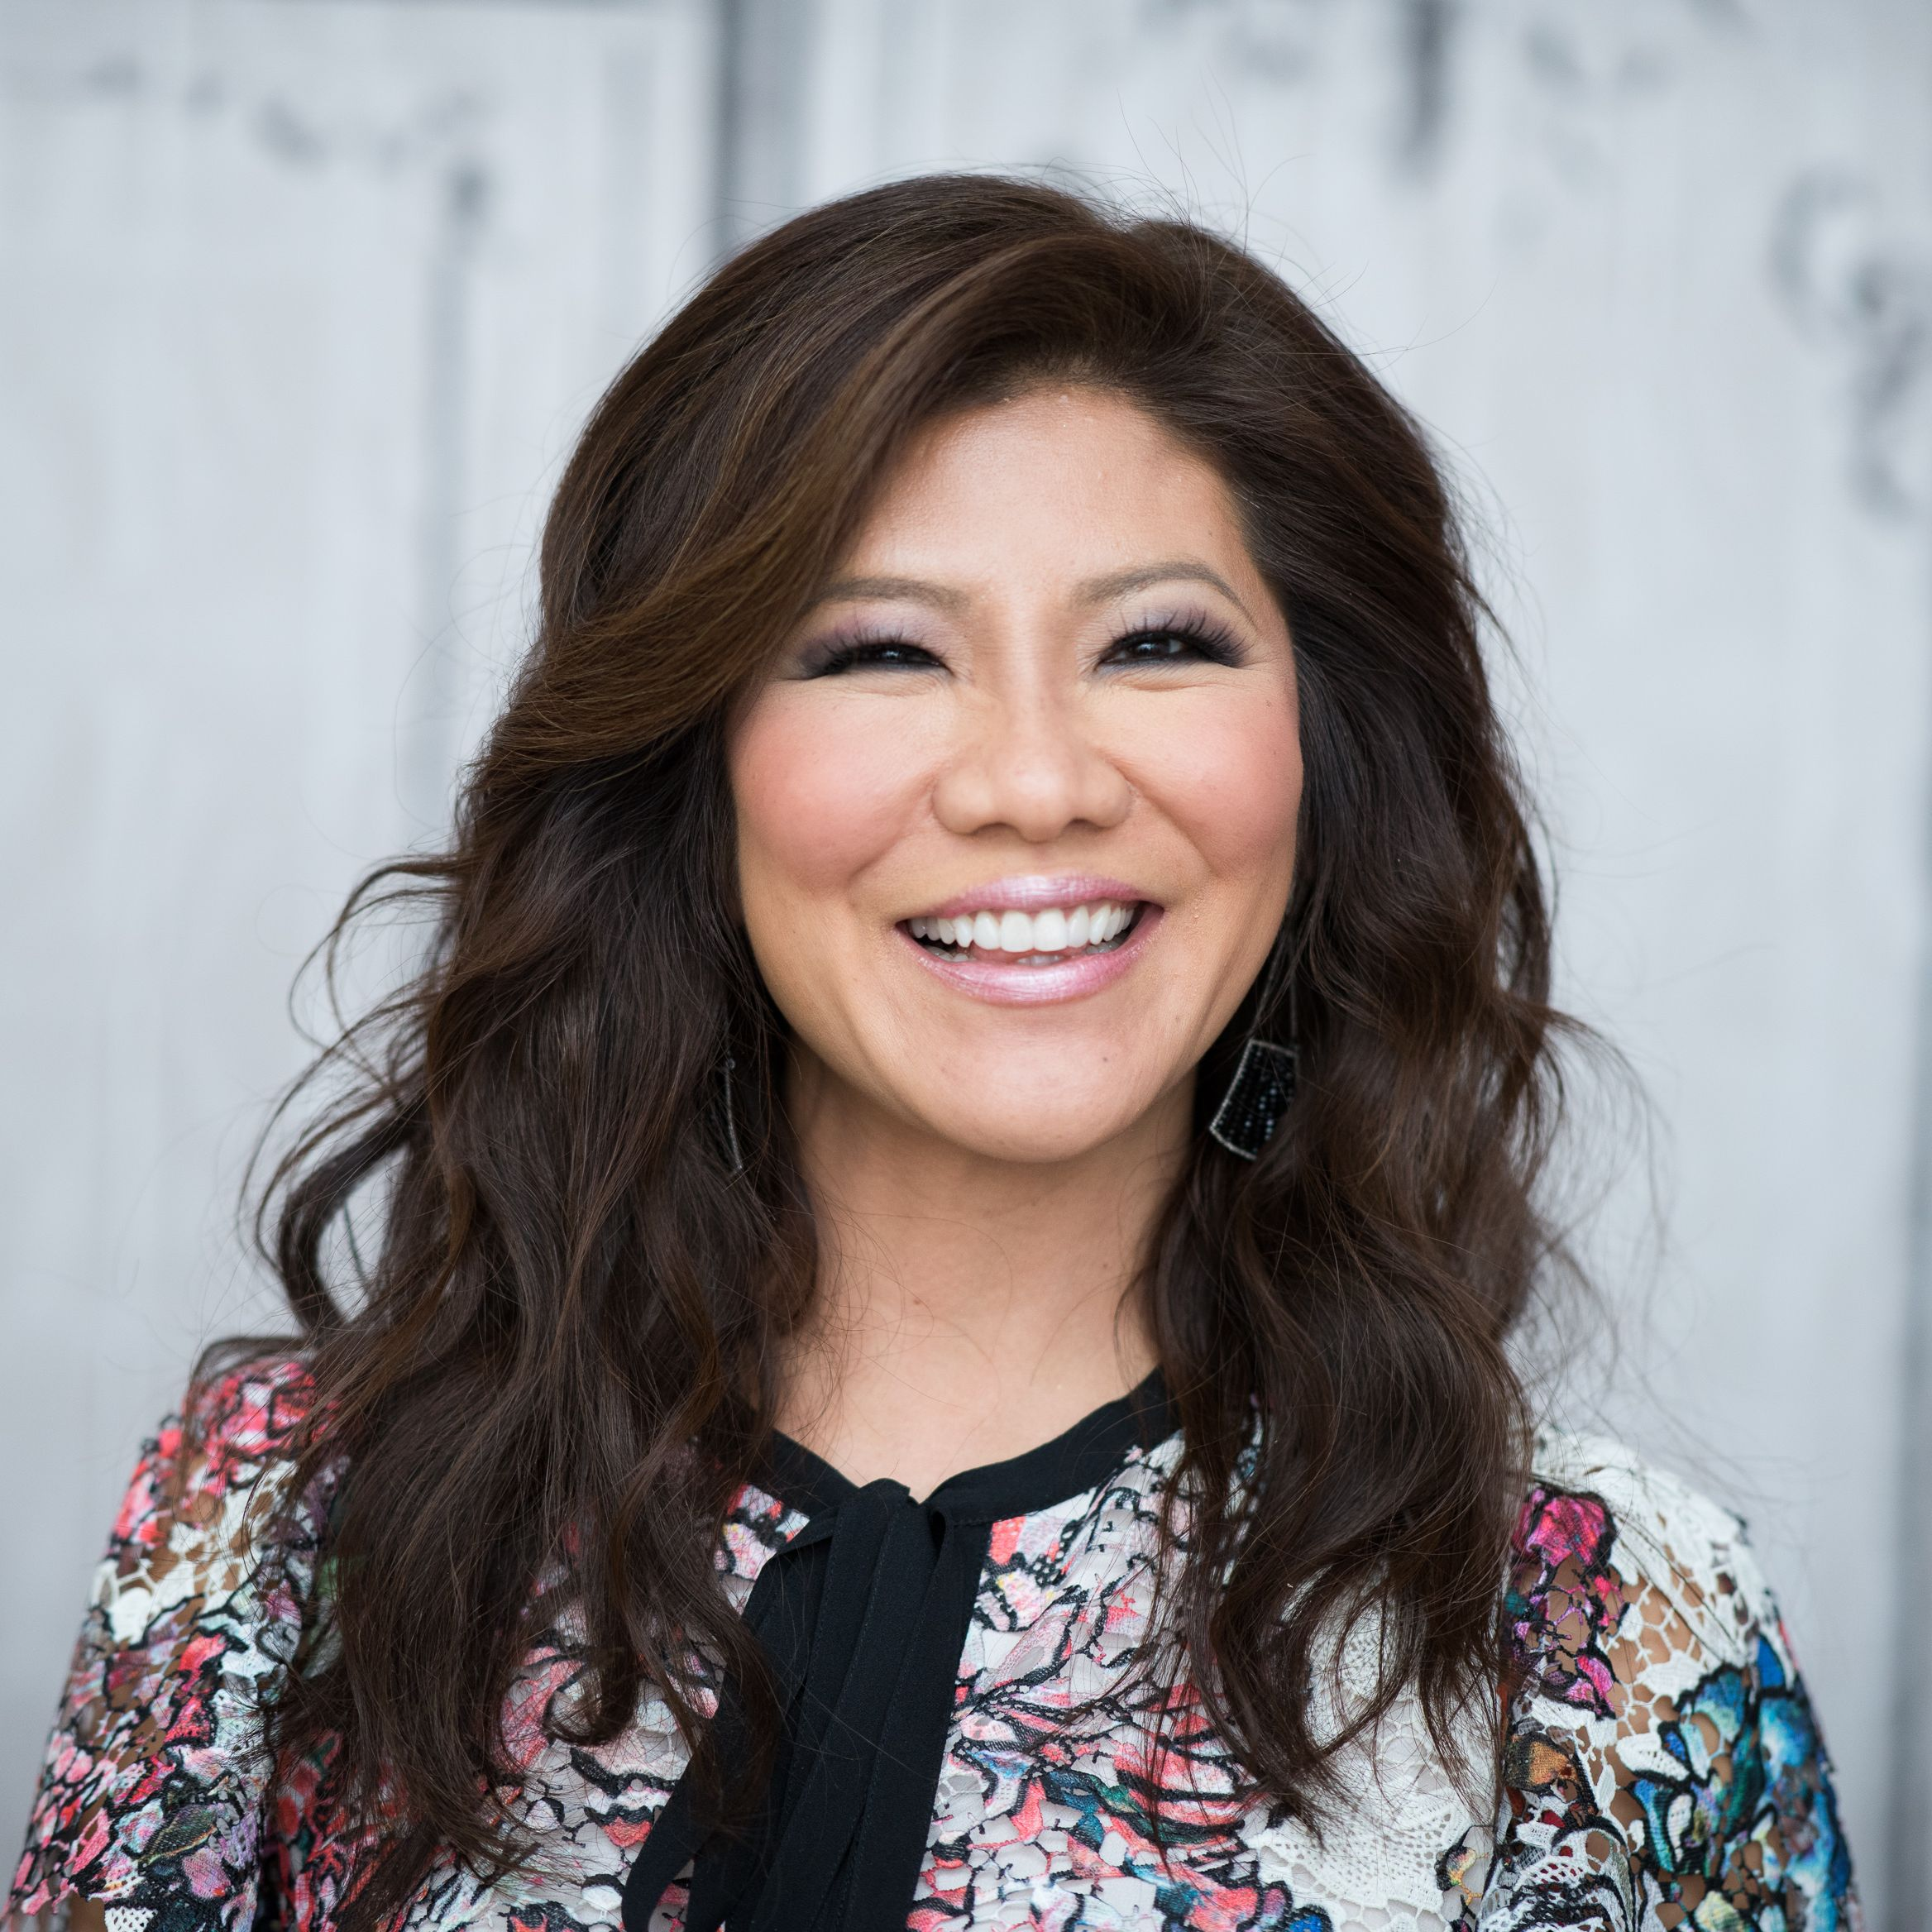 Everything We Know About Longtime Big Brother Host Julie Chen Moonves